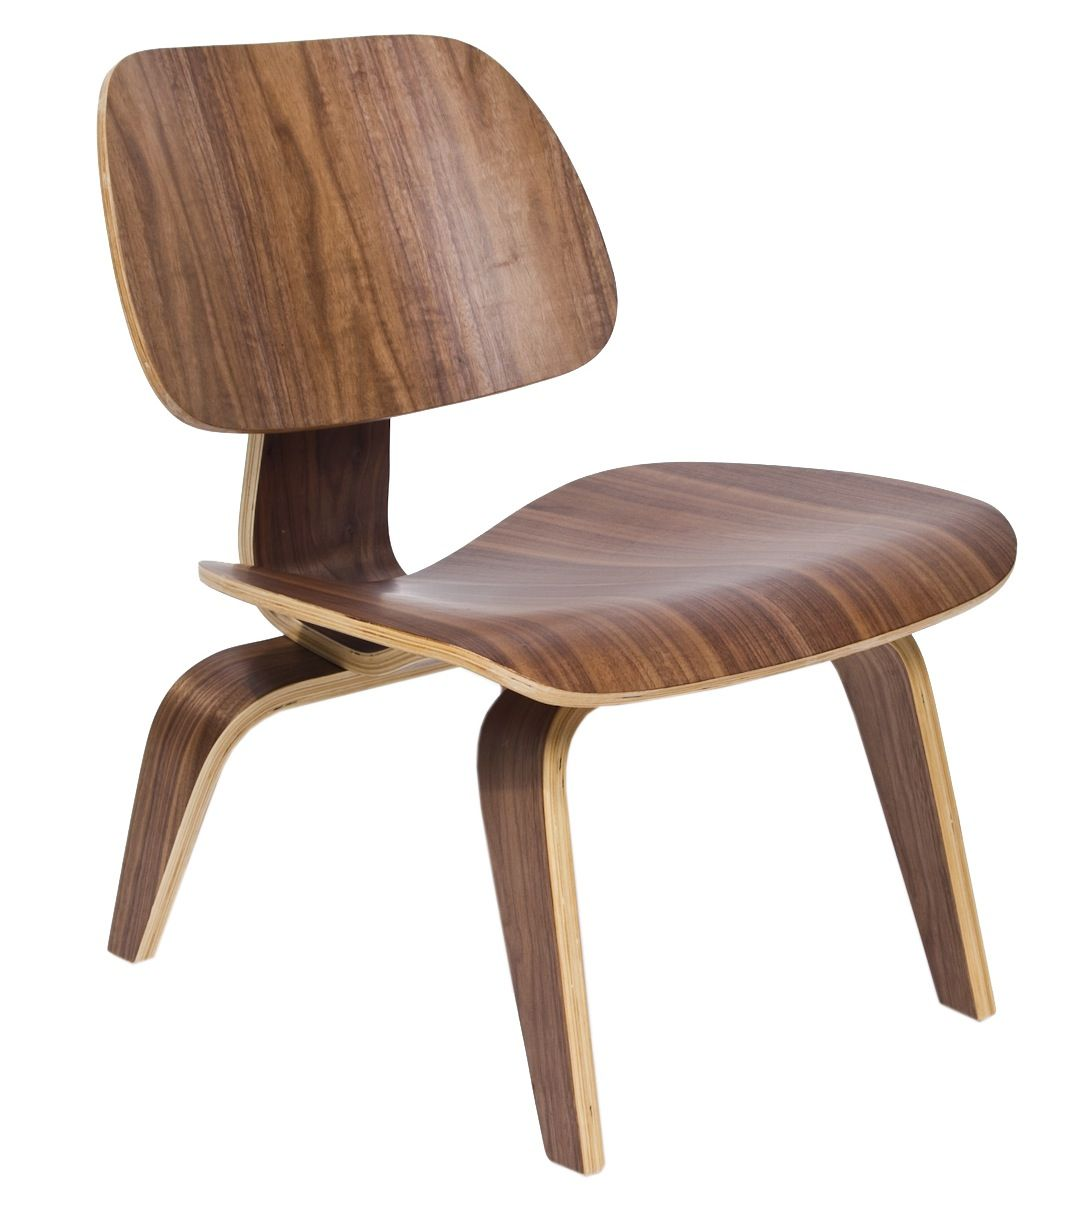 Molded Plywood Lounge Chair By Eames Meuble design